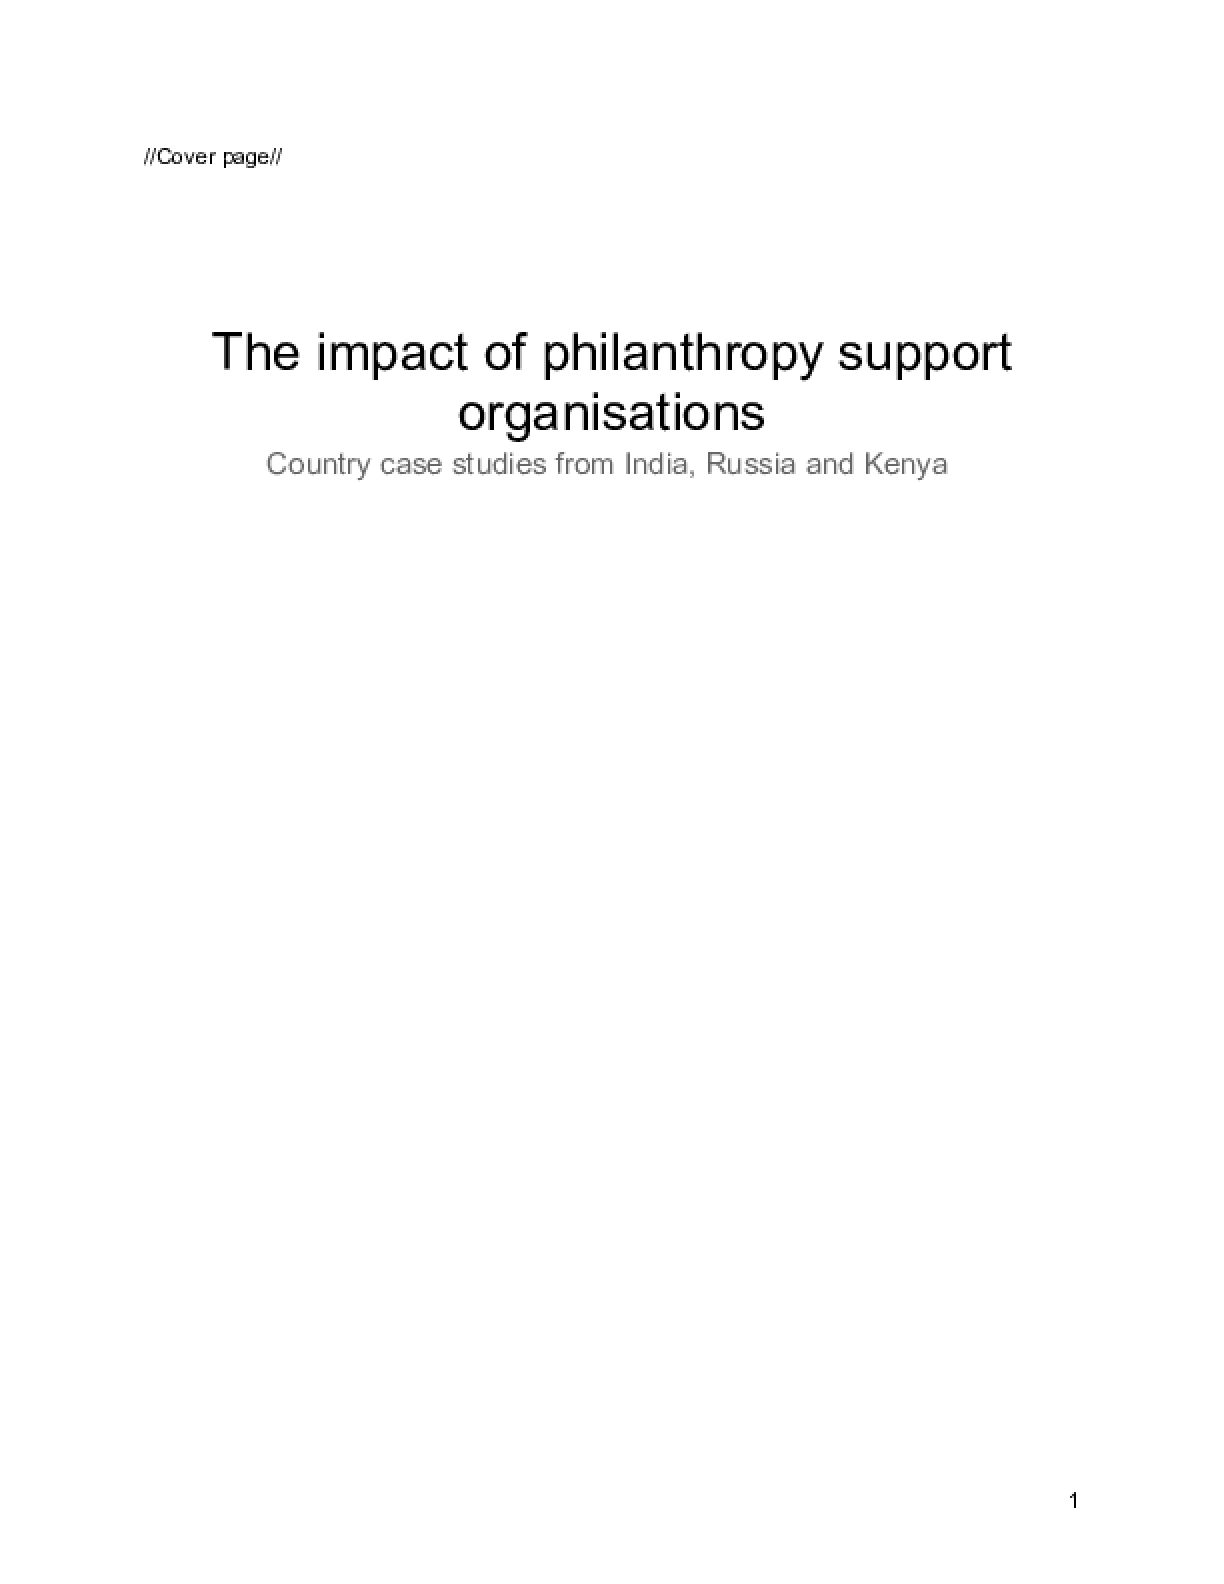 The impact of philanthropy support organisations Country case studies from India, Russia and Kenya